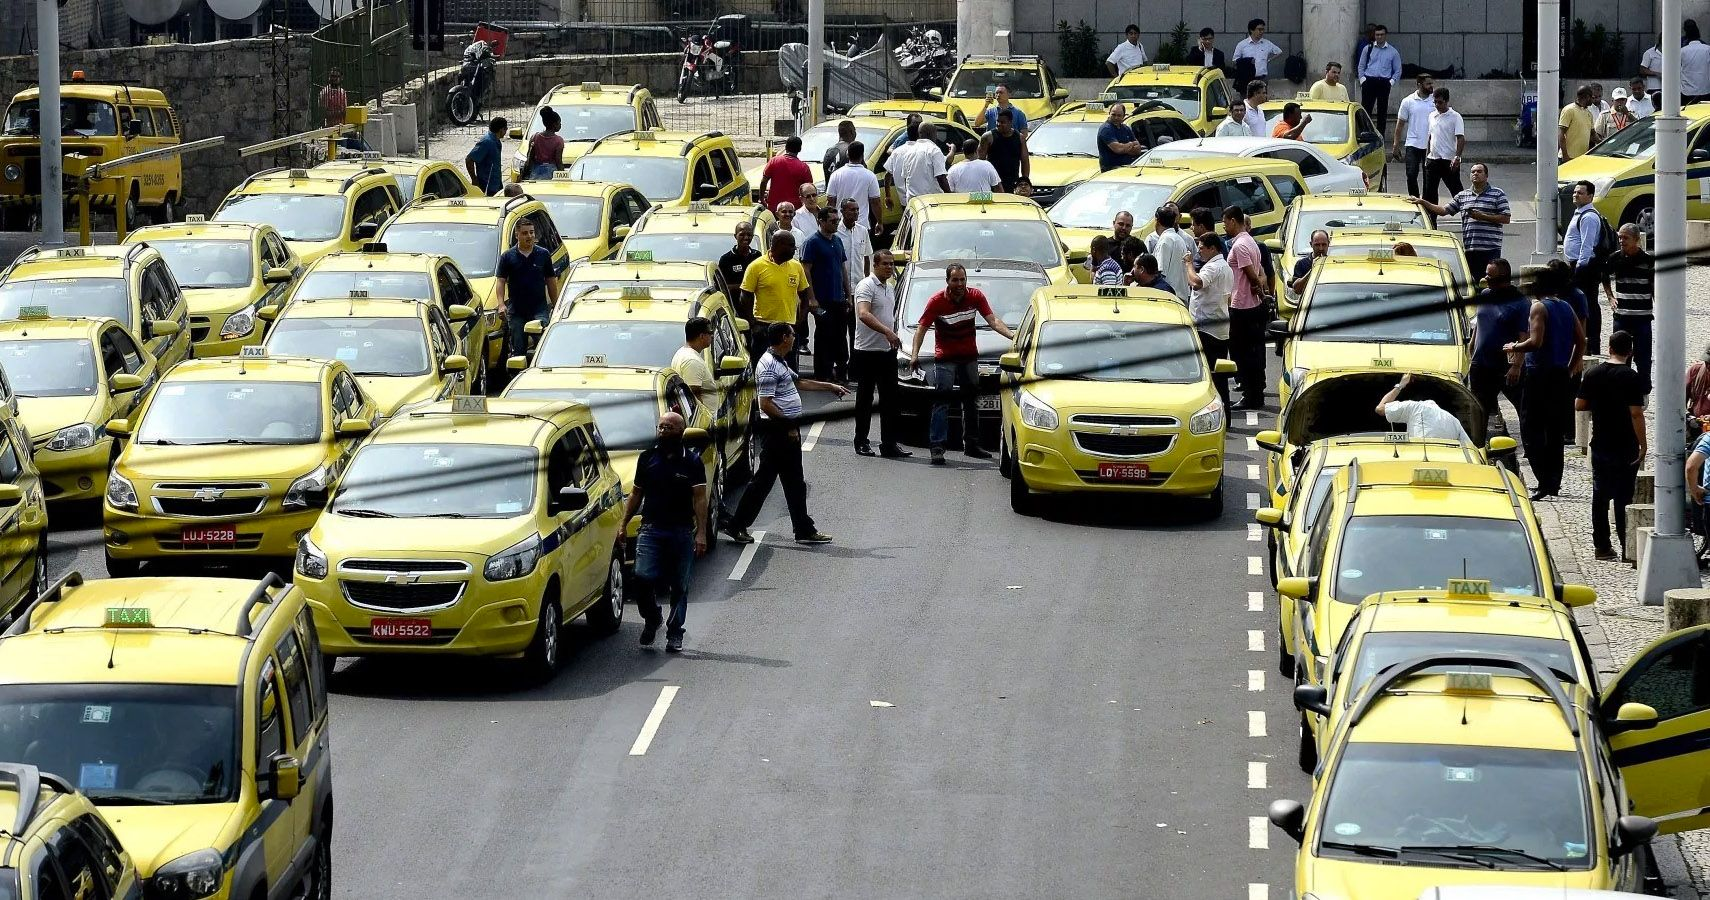 10 Secrets Airport Taxi Drivers Don't Want You To Know